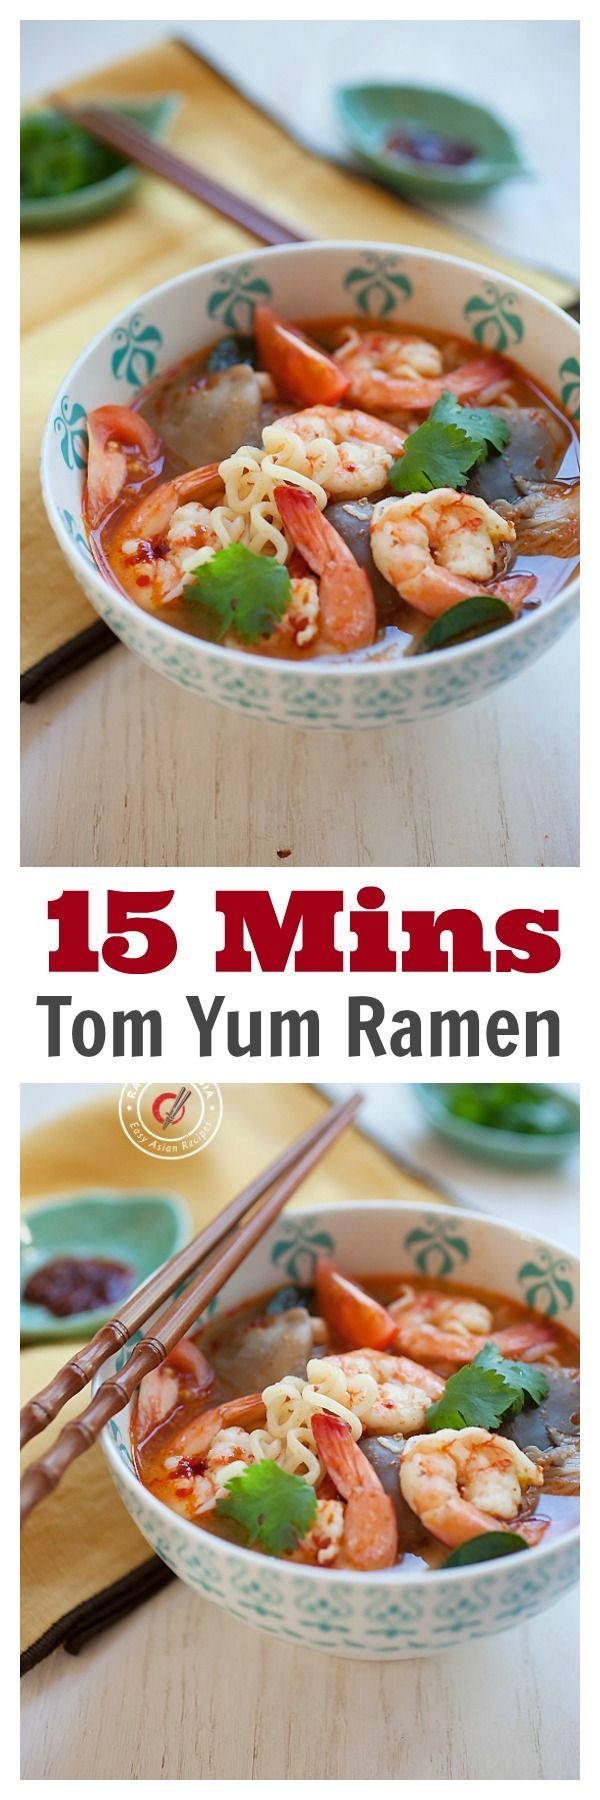 15-Minute Tom Yum Noodle Soup - not packaged ramen, but made from scratch, super EASY Thai Tom Yum Ramen. So GOOD   rasamalaysia.com